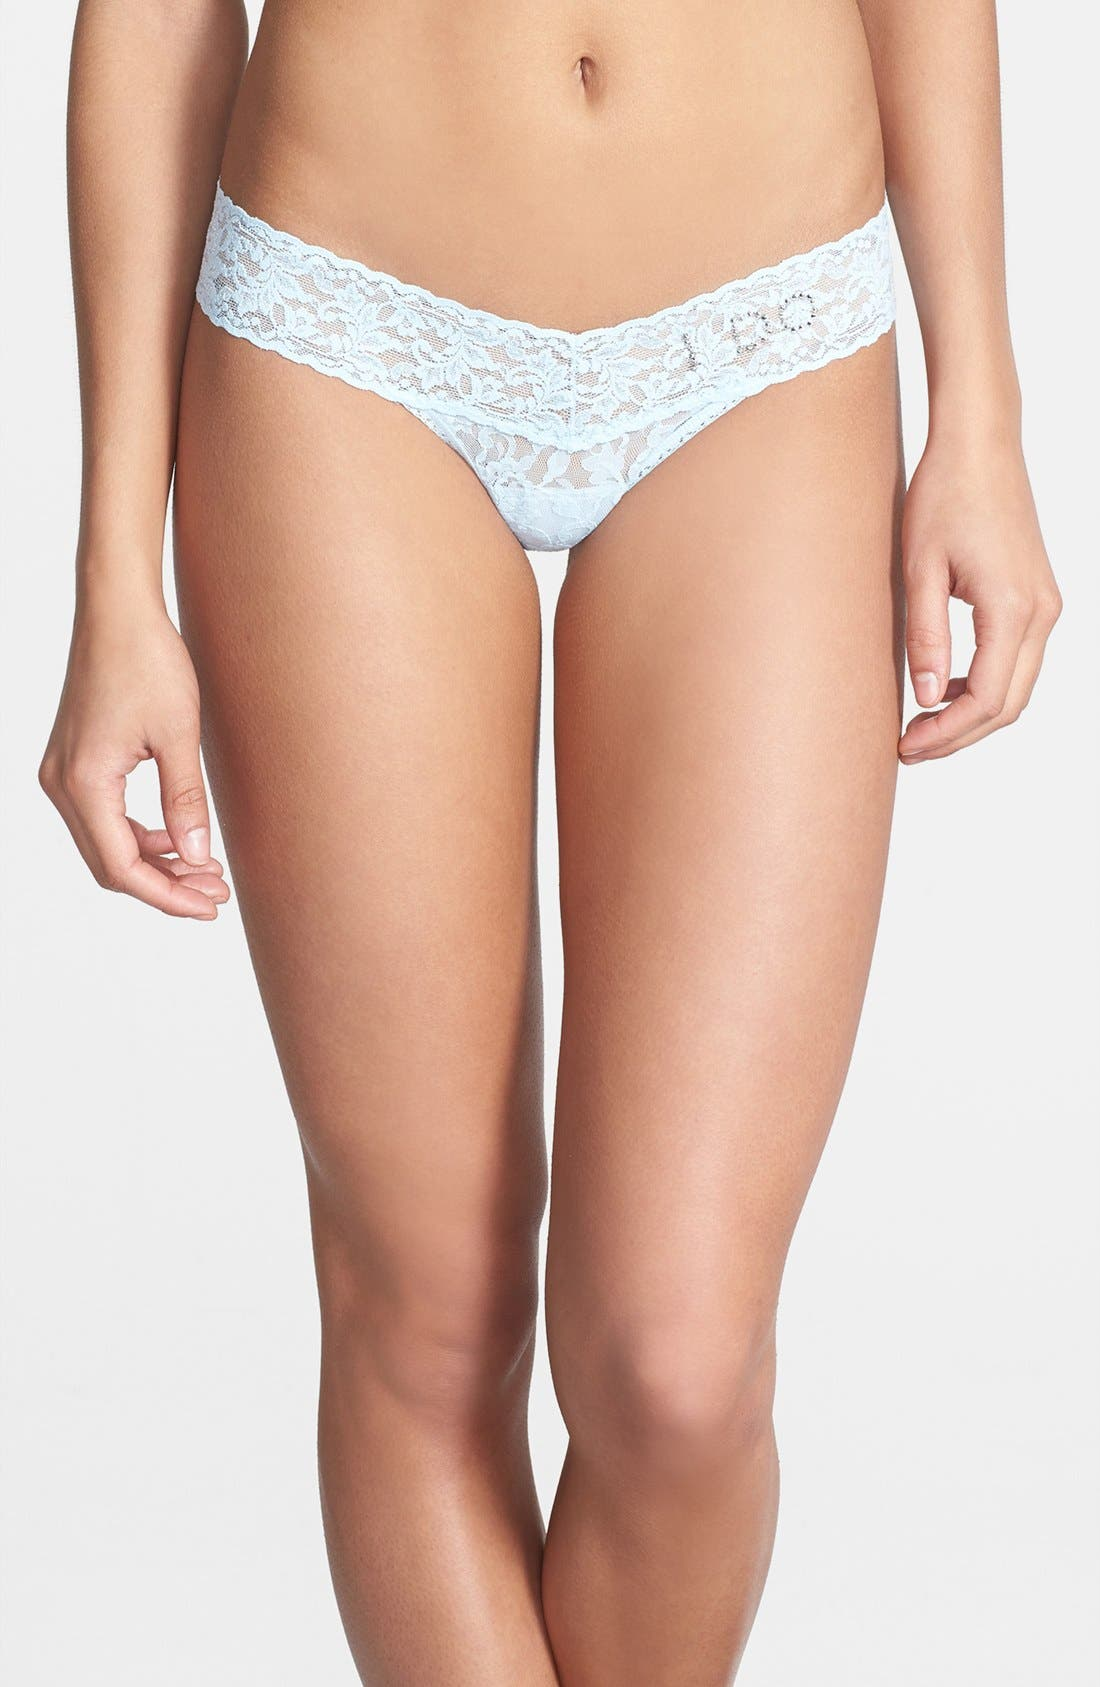 190386c07c8 Women's Sexy Lingerie & Intimate Apparel | Nordstrom